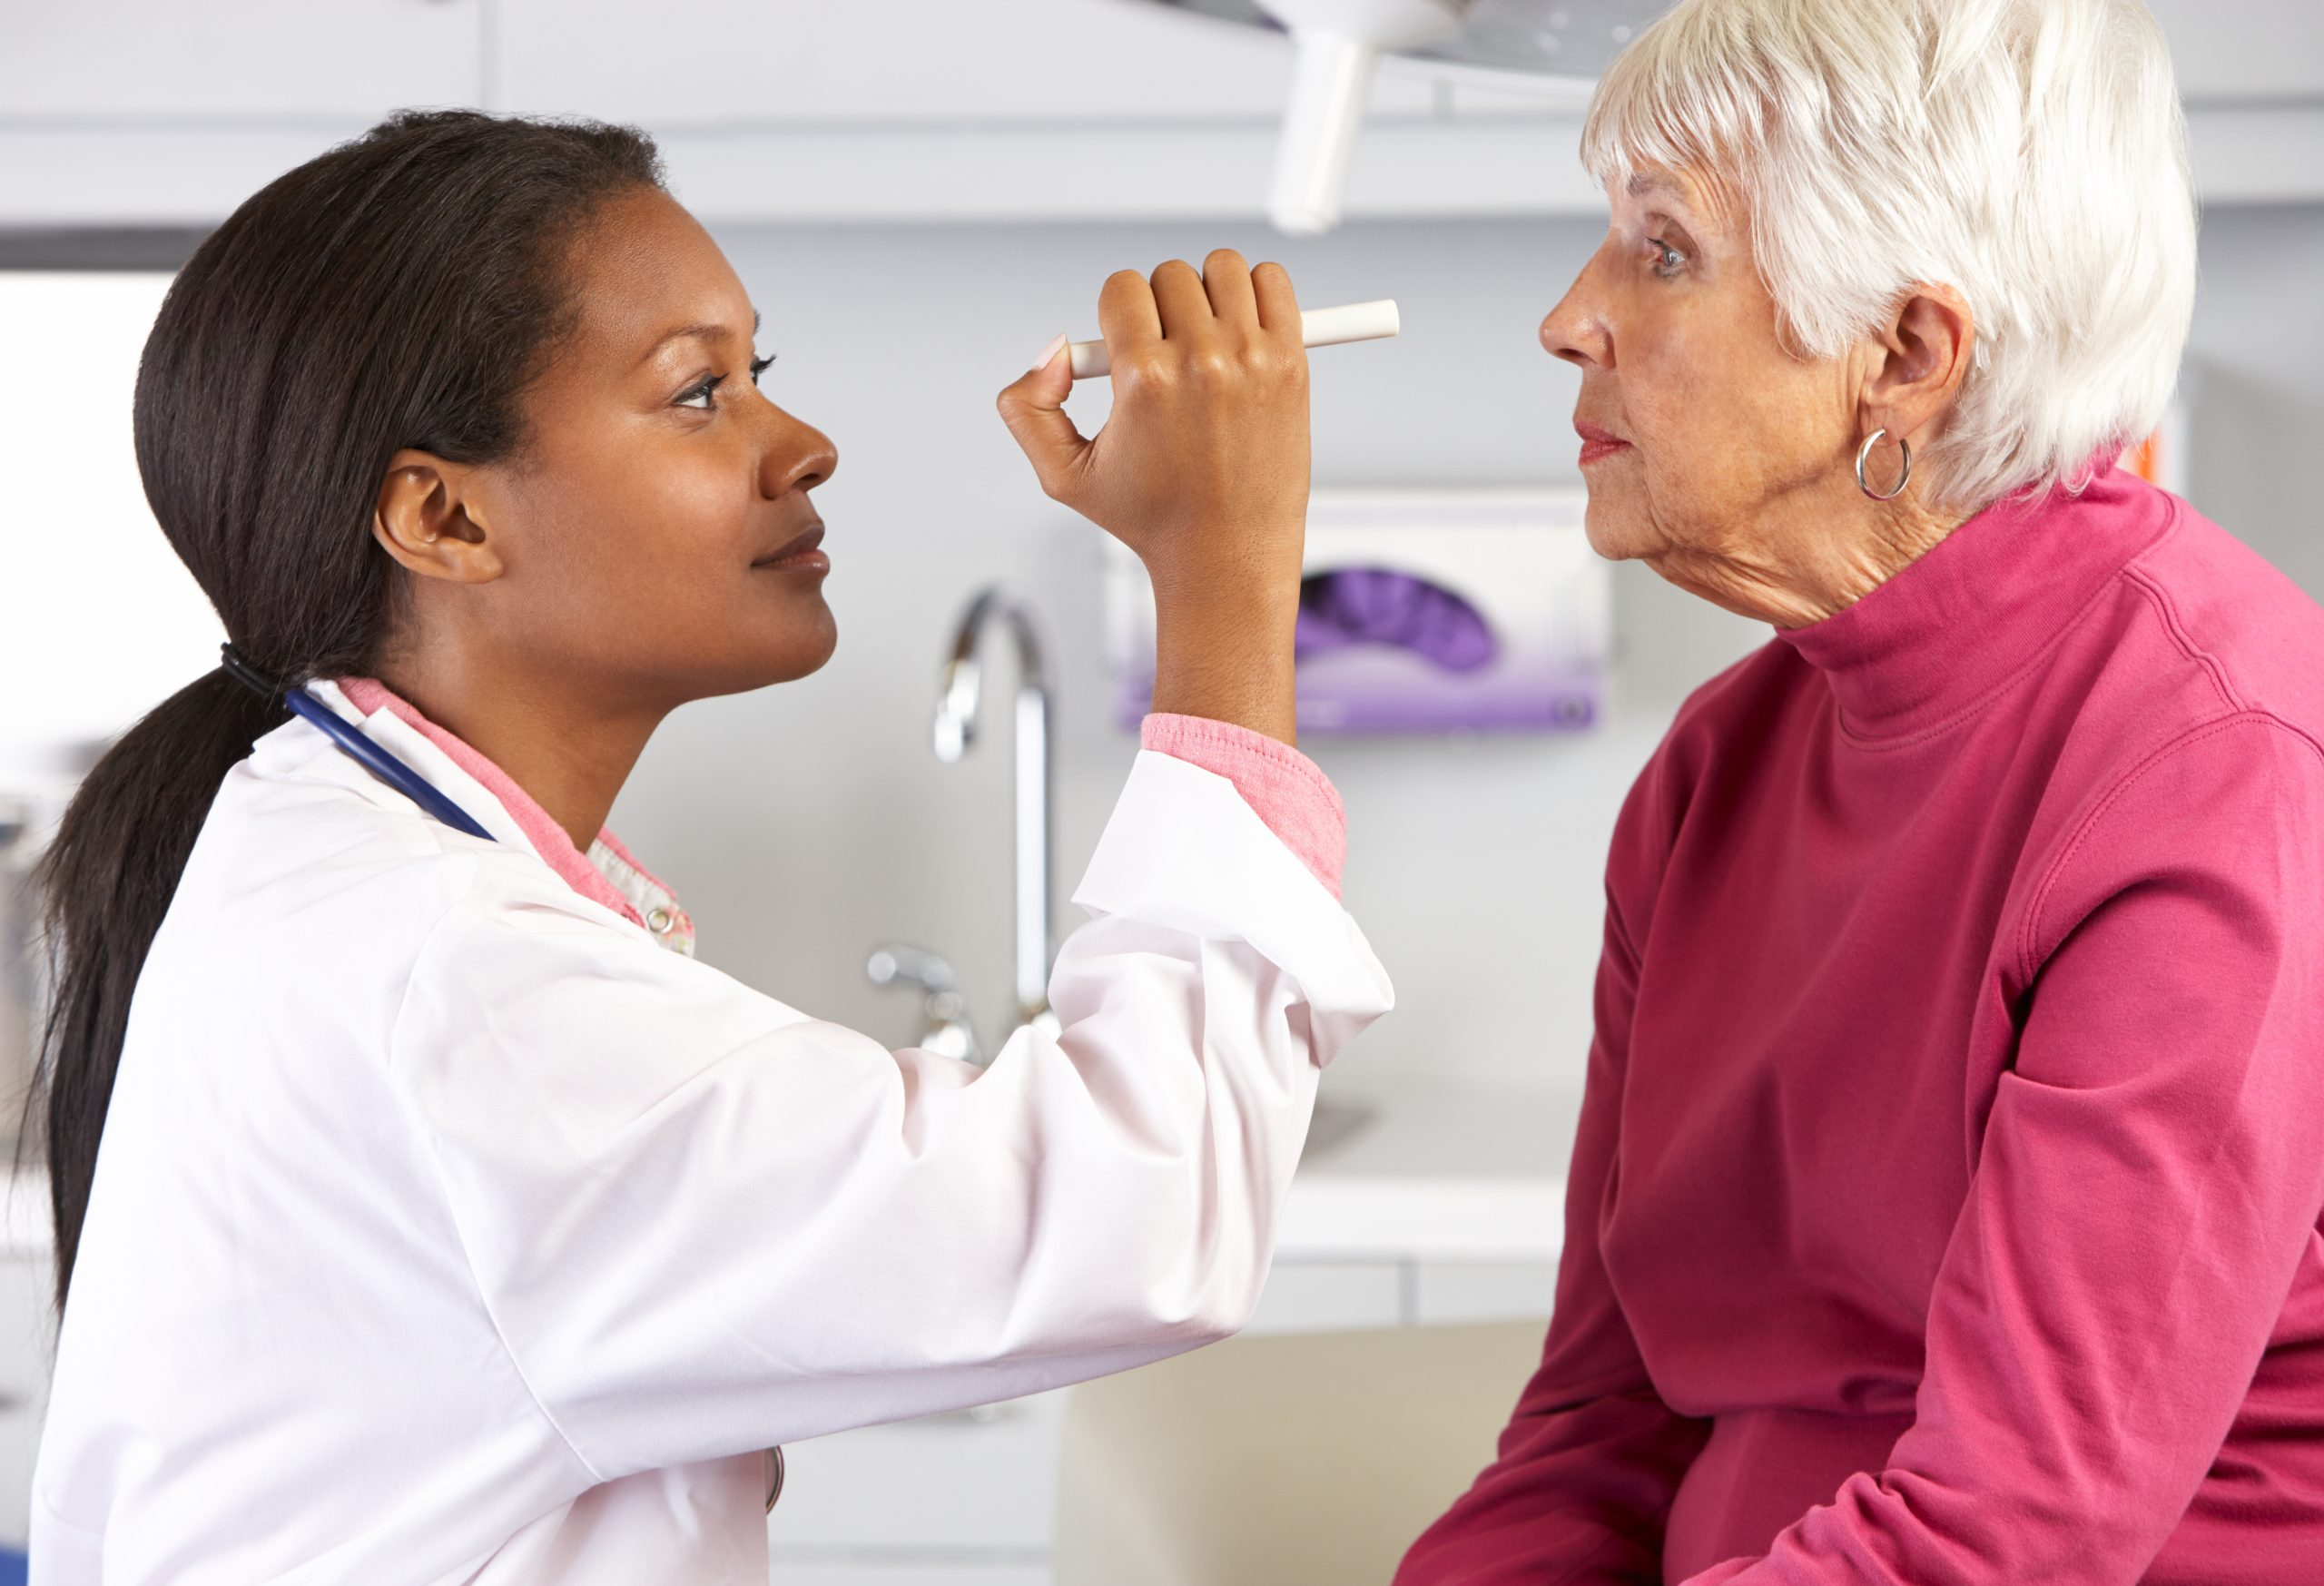 Peripheral Vision Loss: Cause, Treatments And Prevention